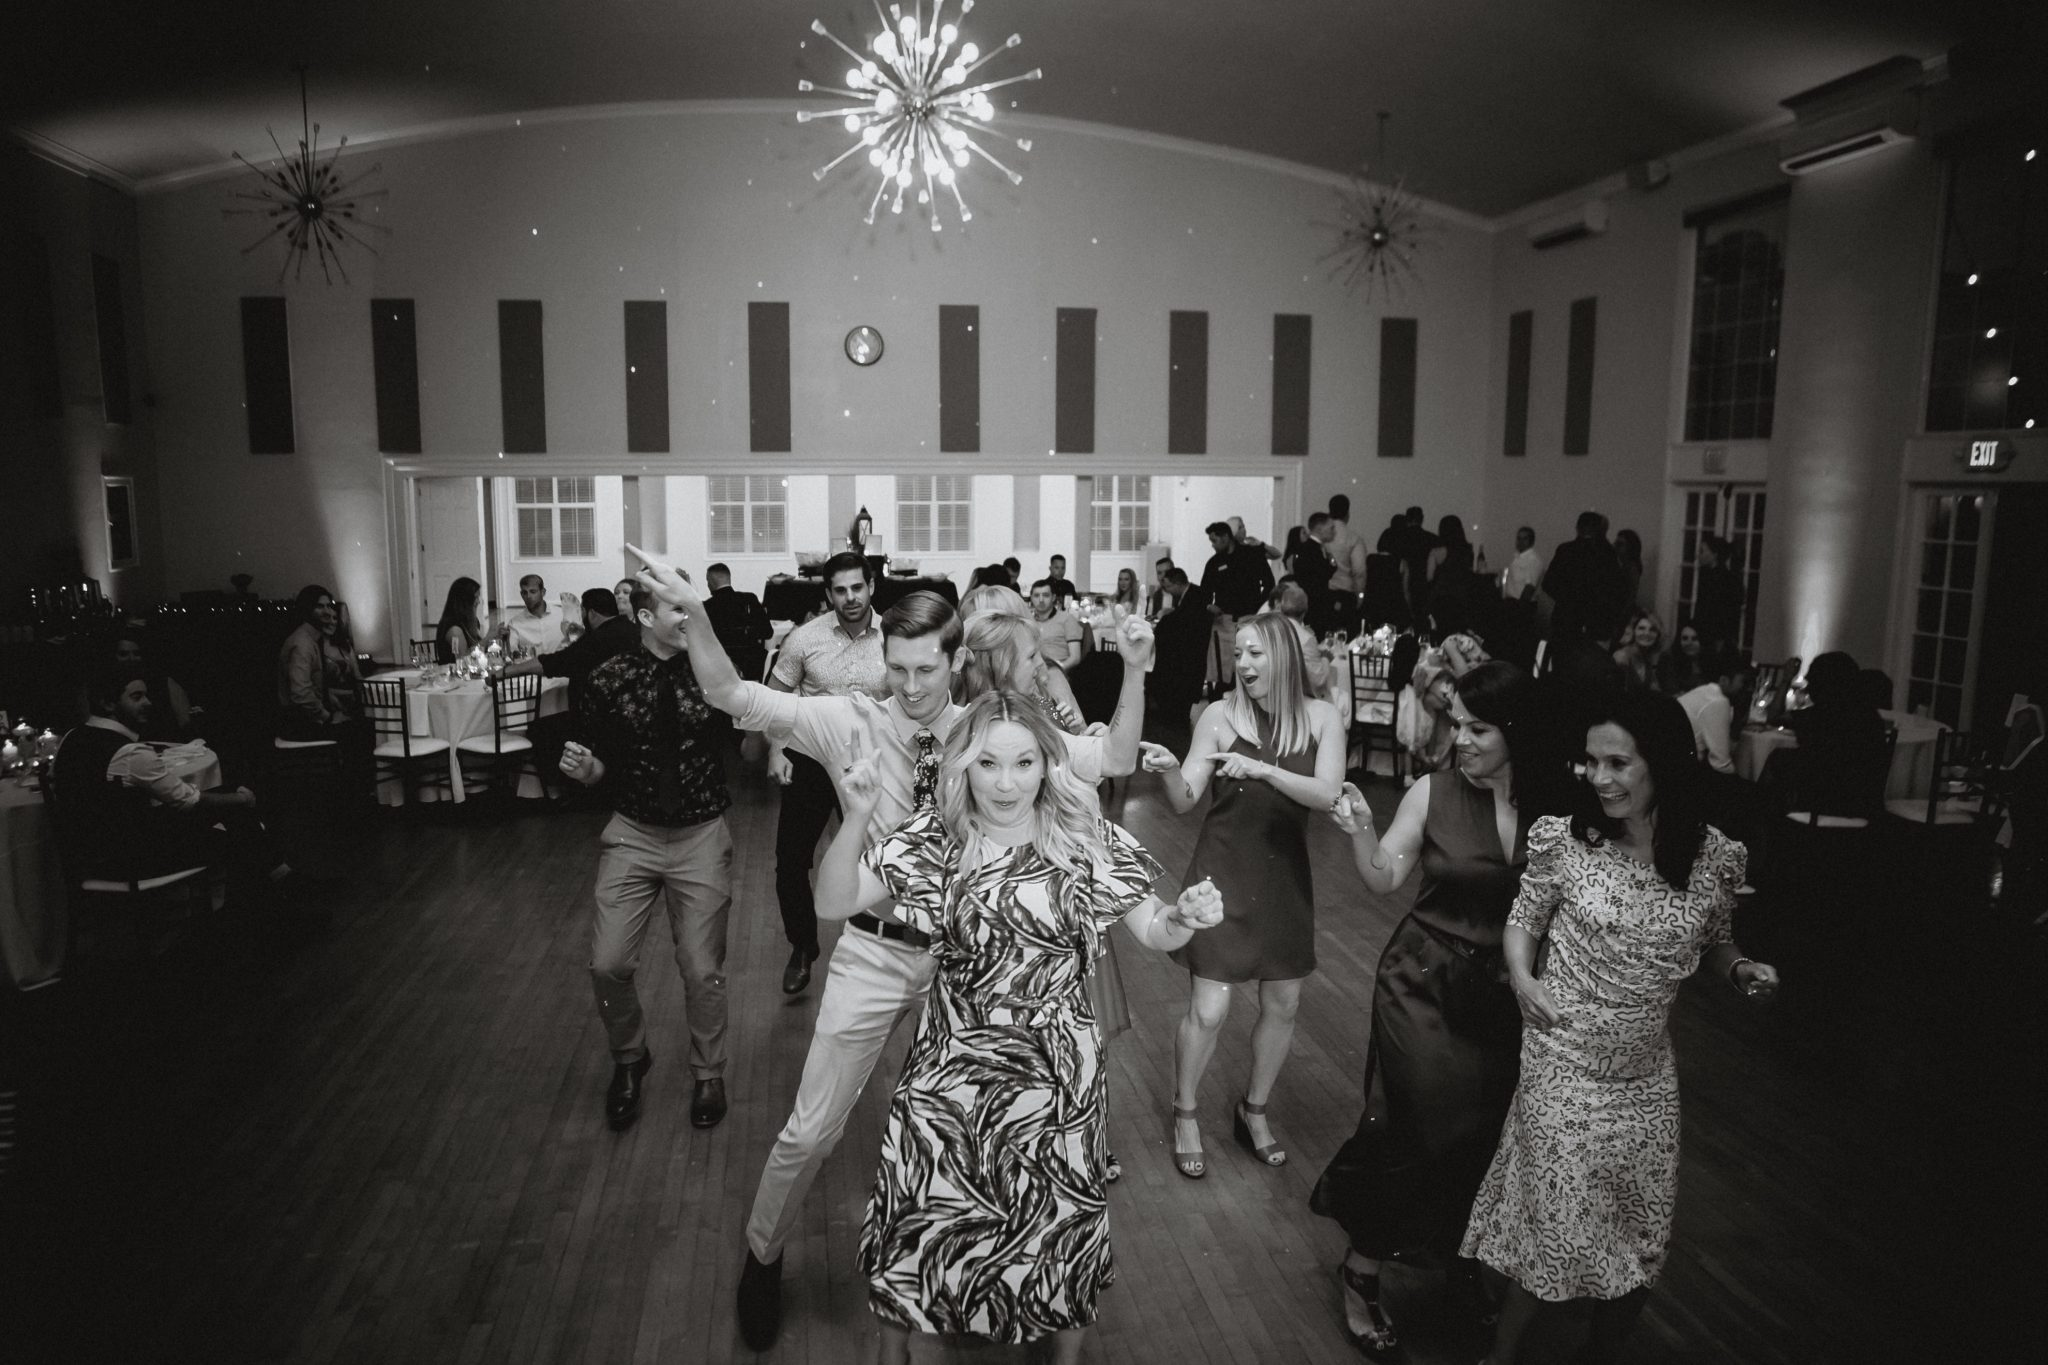 Black and white photo of open dancing at a wedding